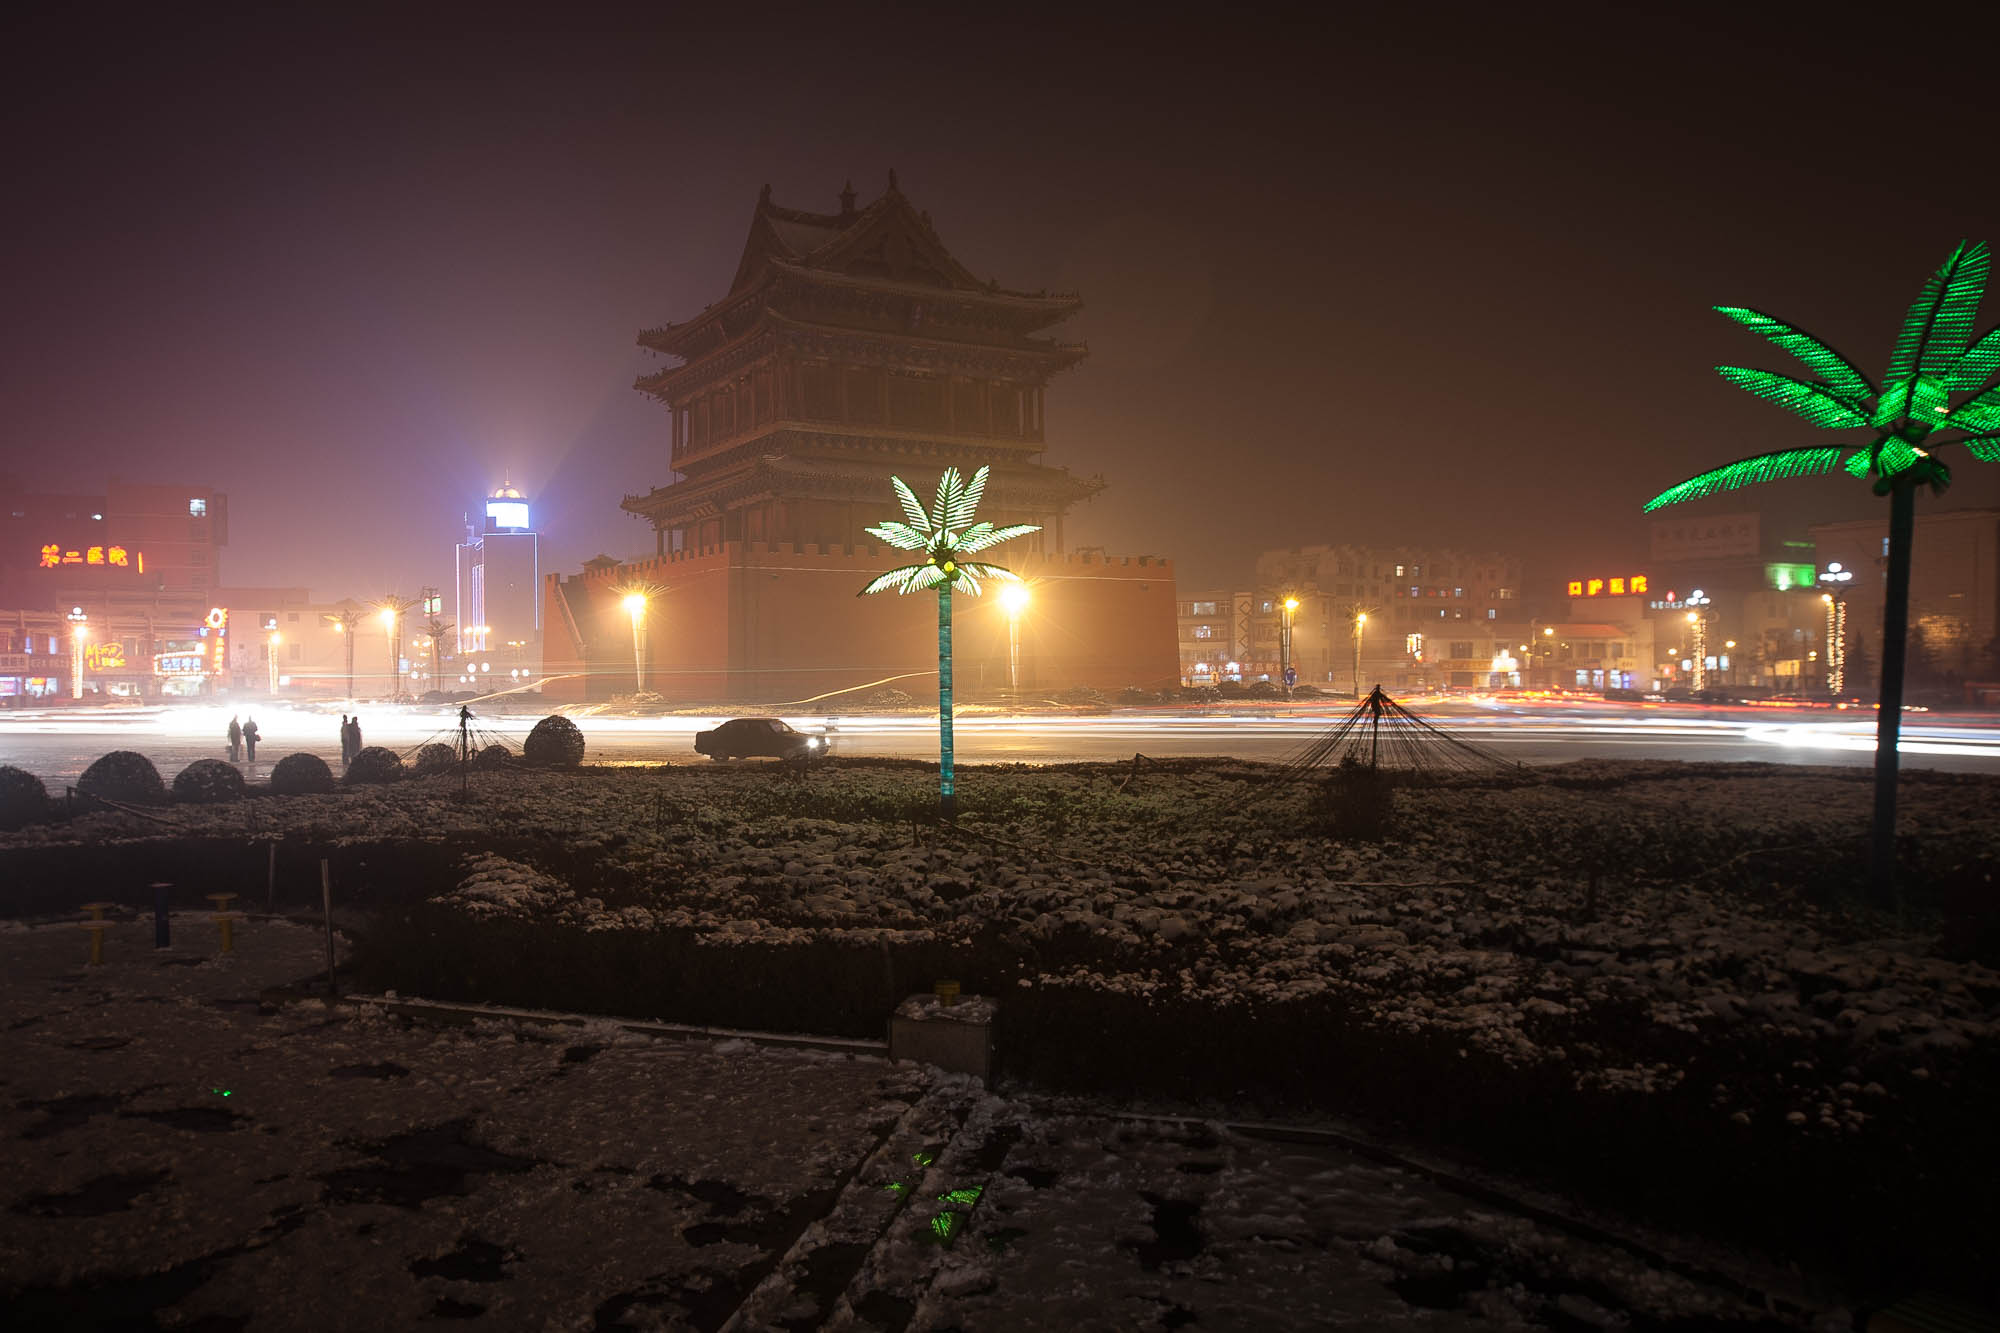 Linfen at night